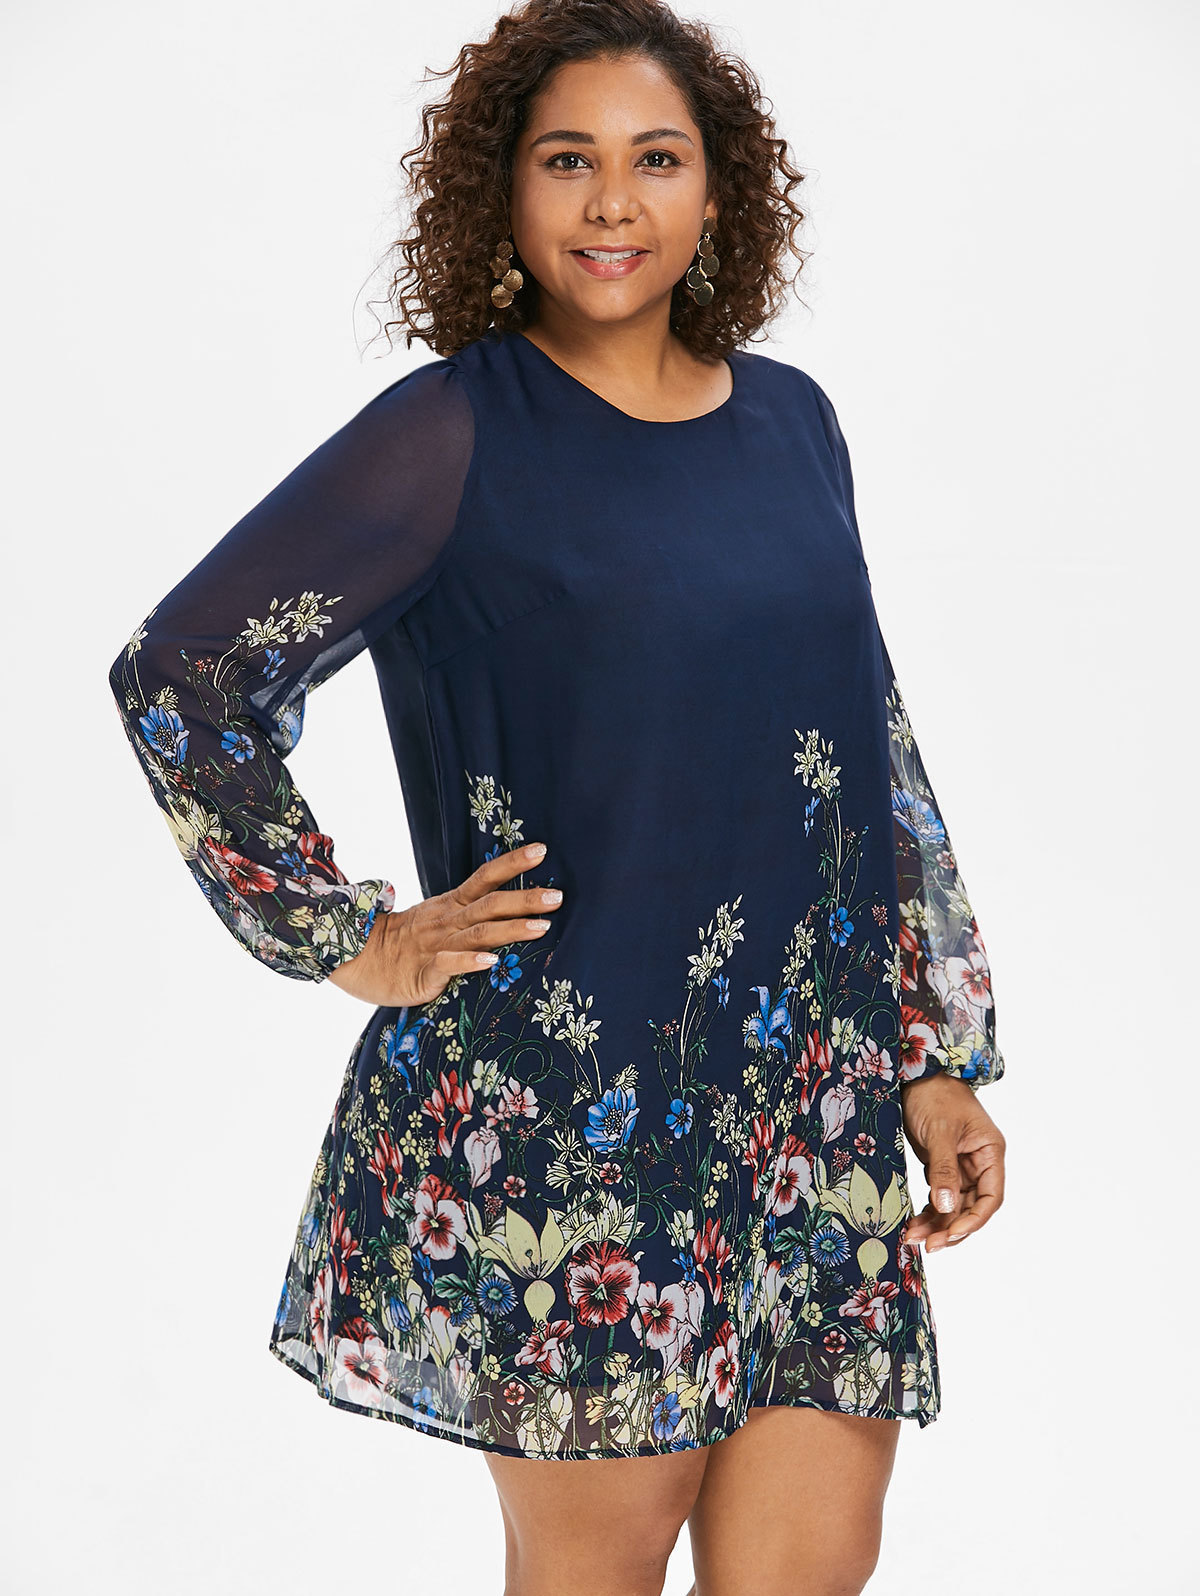 Wipalo Navy Blue Plus Size Floral Embroidery Tunica Dress Spring Elegant Grand Sizes Tribal Flower Printing Appearance Dress Y19071101